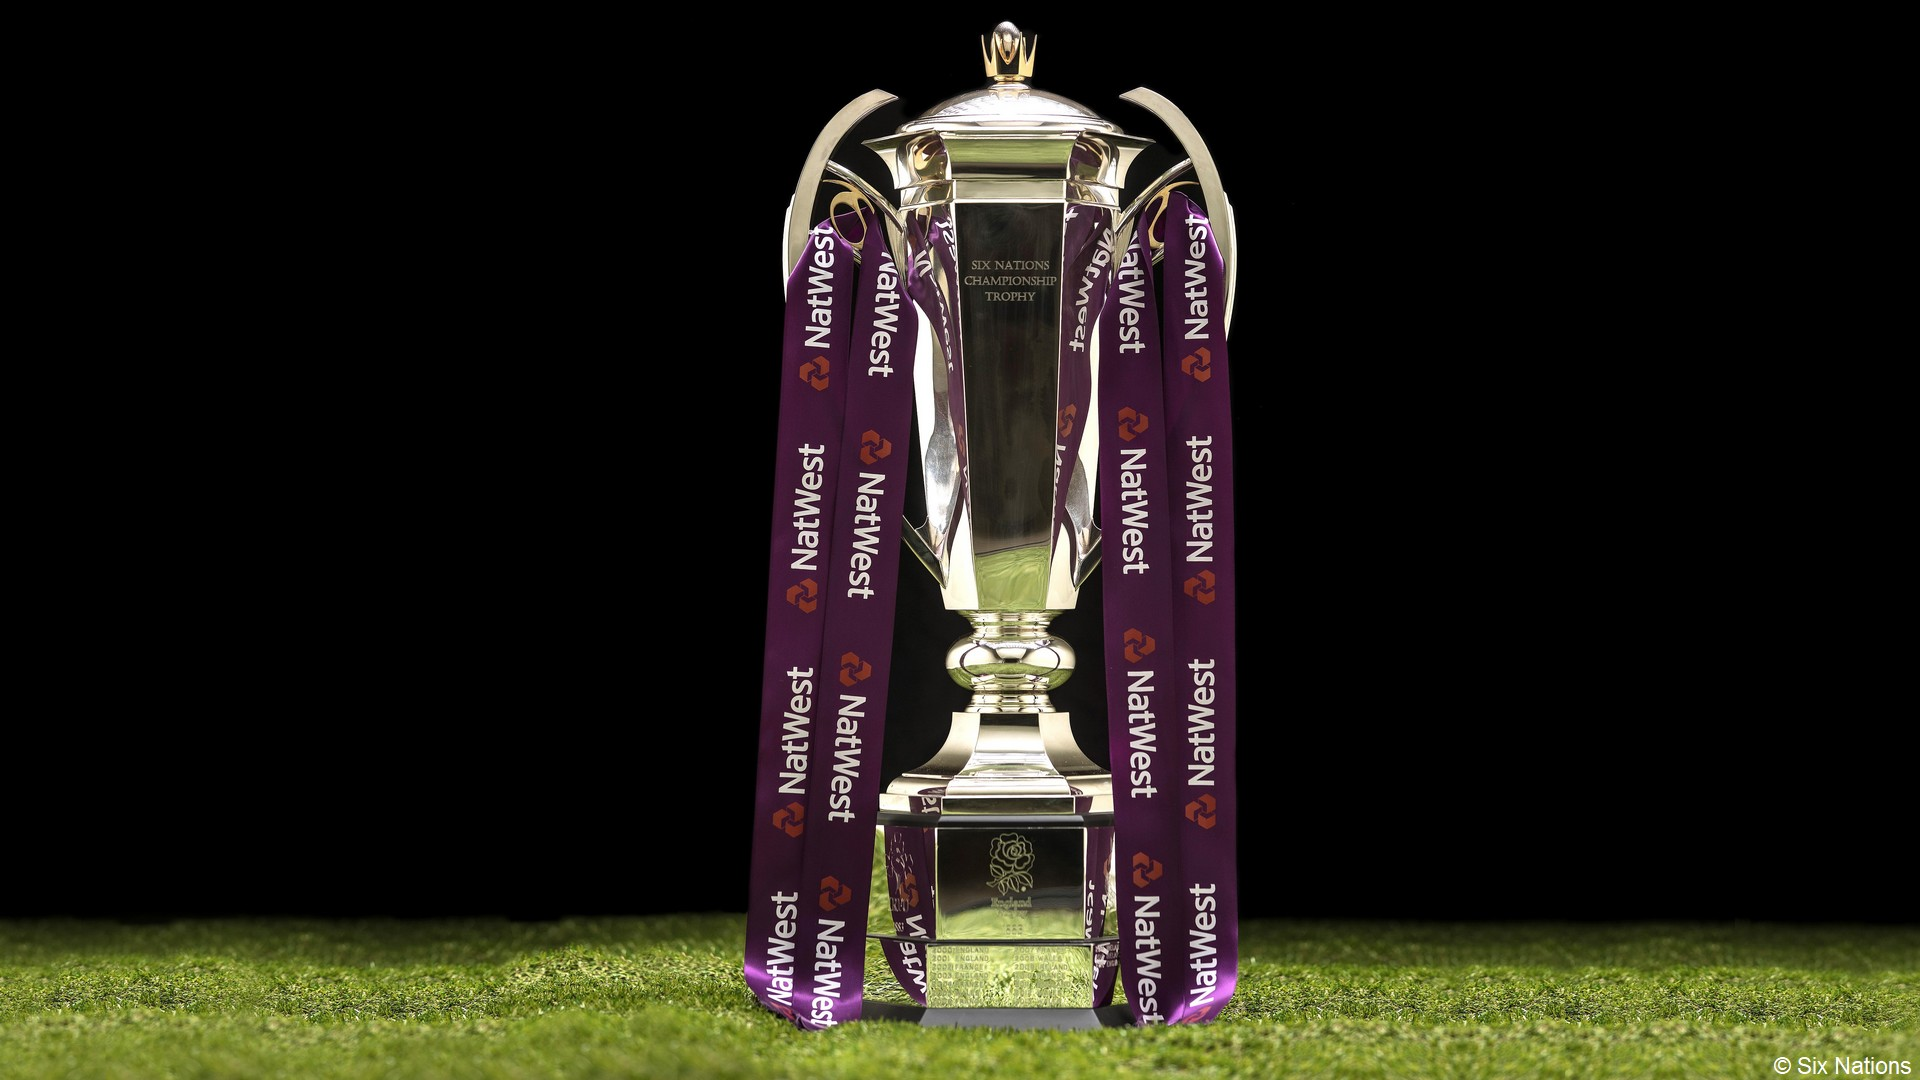 Rugby – Six Nations (c) Six Nations